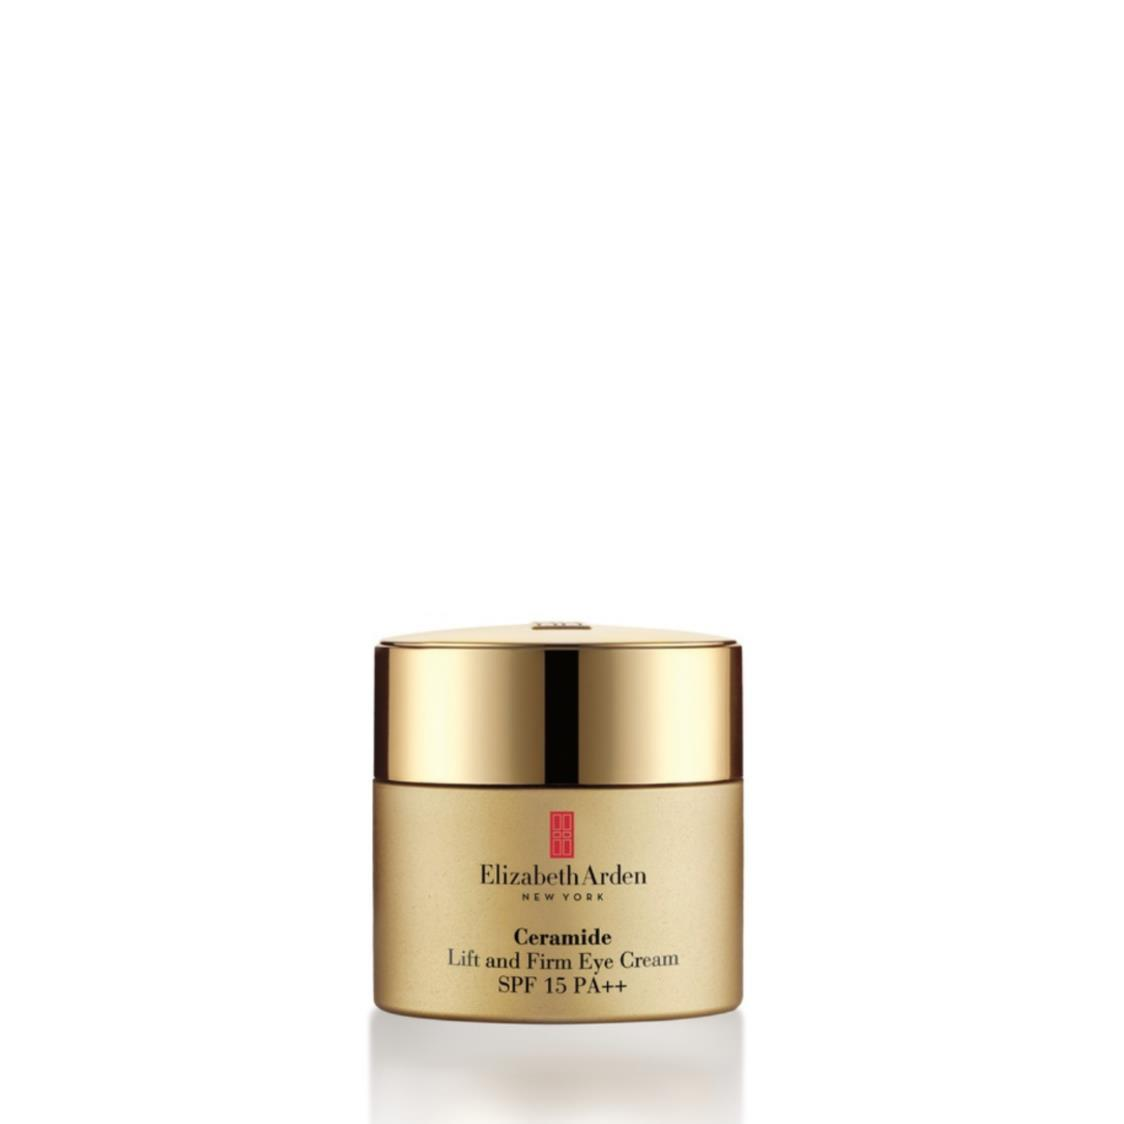 Ceramide Lift and Firm Eye Cream SPF15 PA 144g